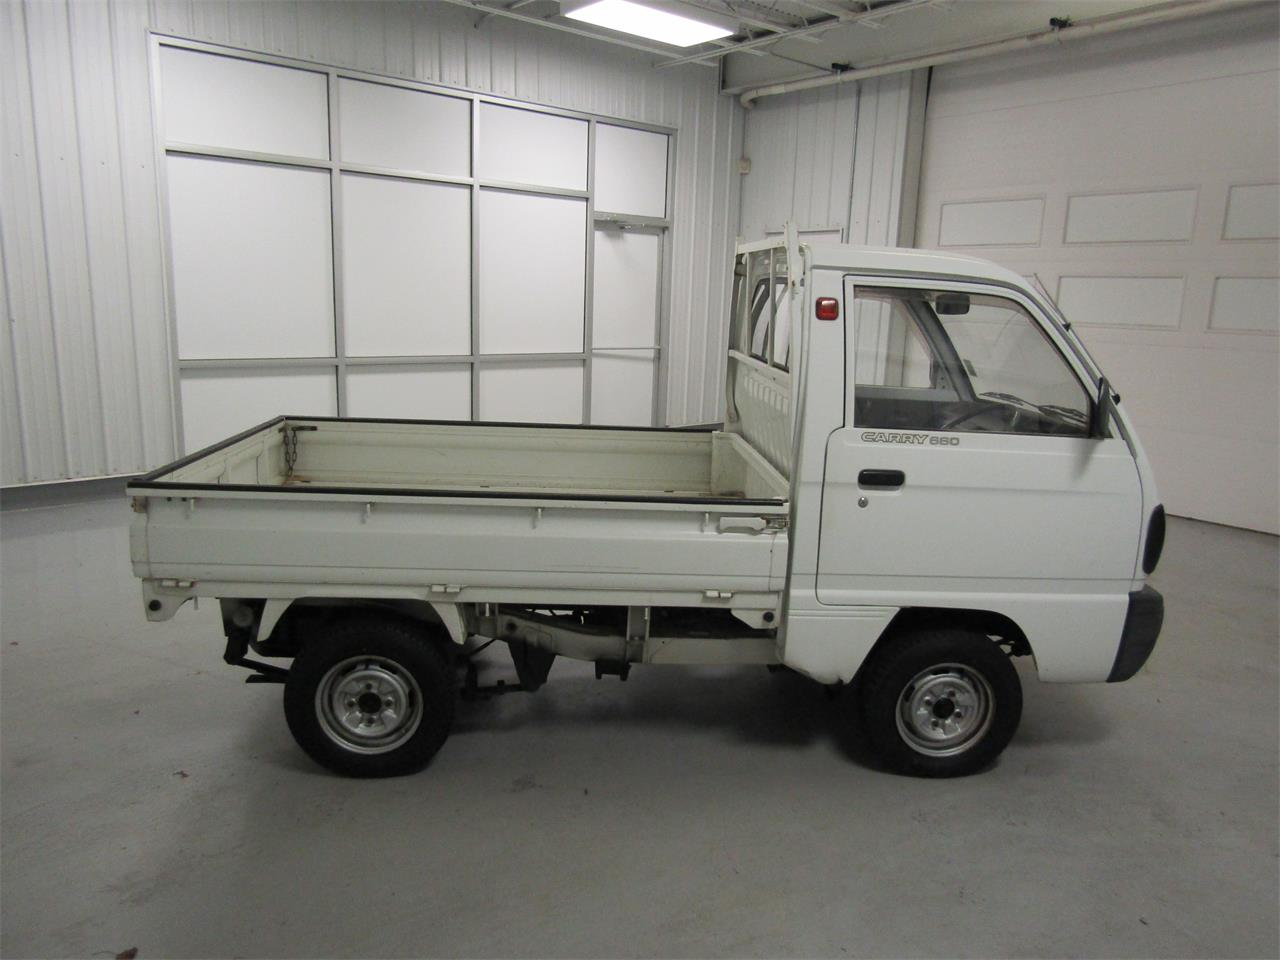 1991 Suzuki Carry for sale in Christiansburg, VA – photo 11